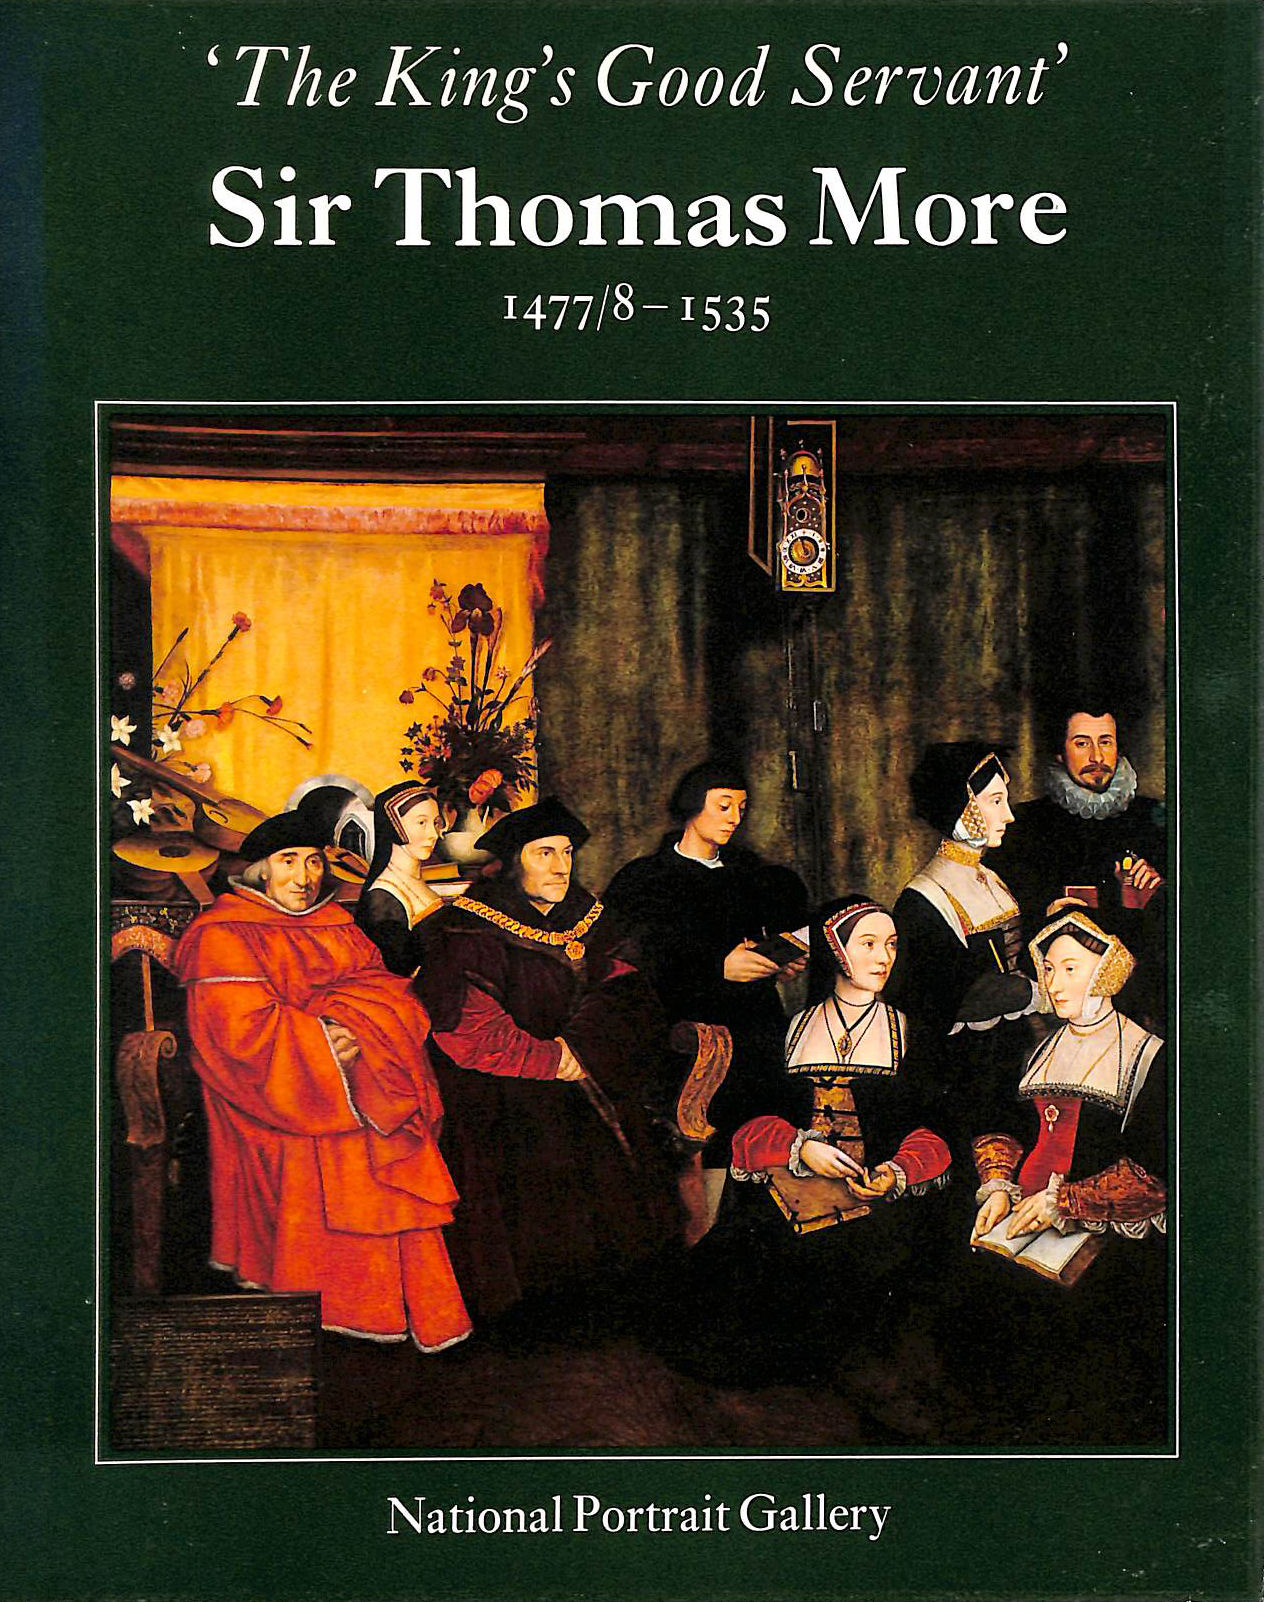 Image for King's Good Servant, Sir Thomas More, 1477/8-1535: Exhibition Catalogue